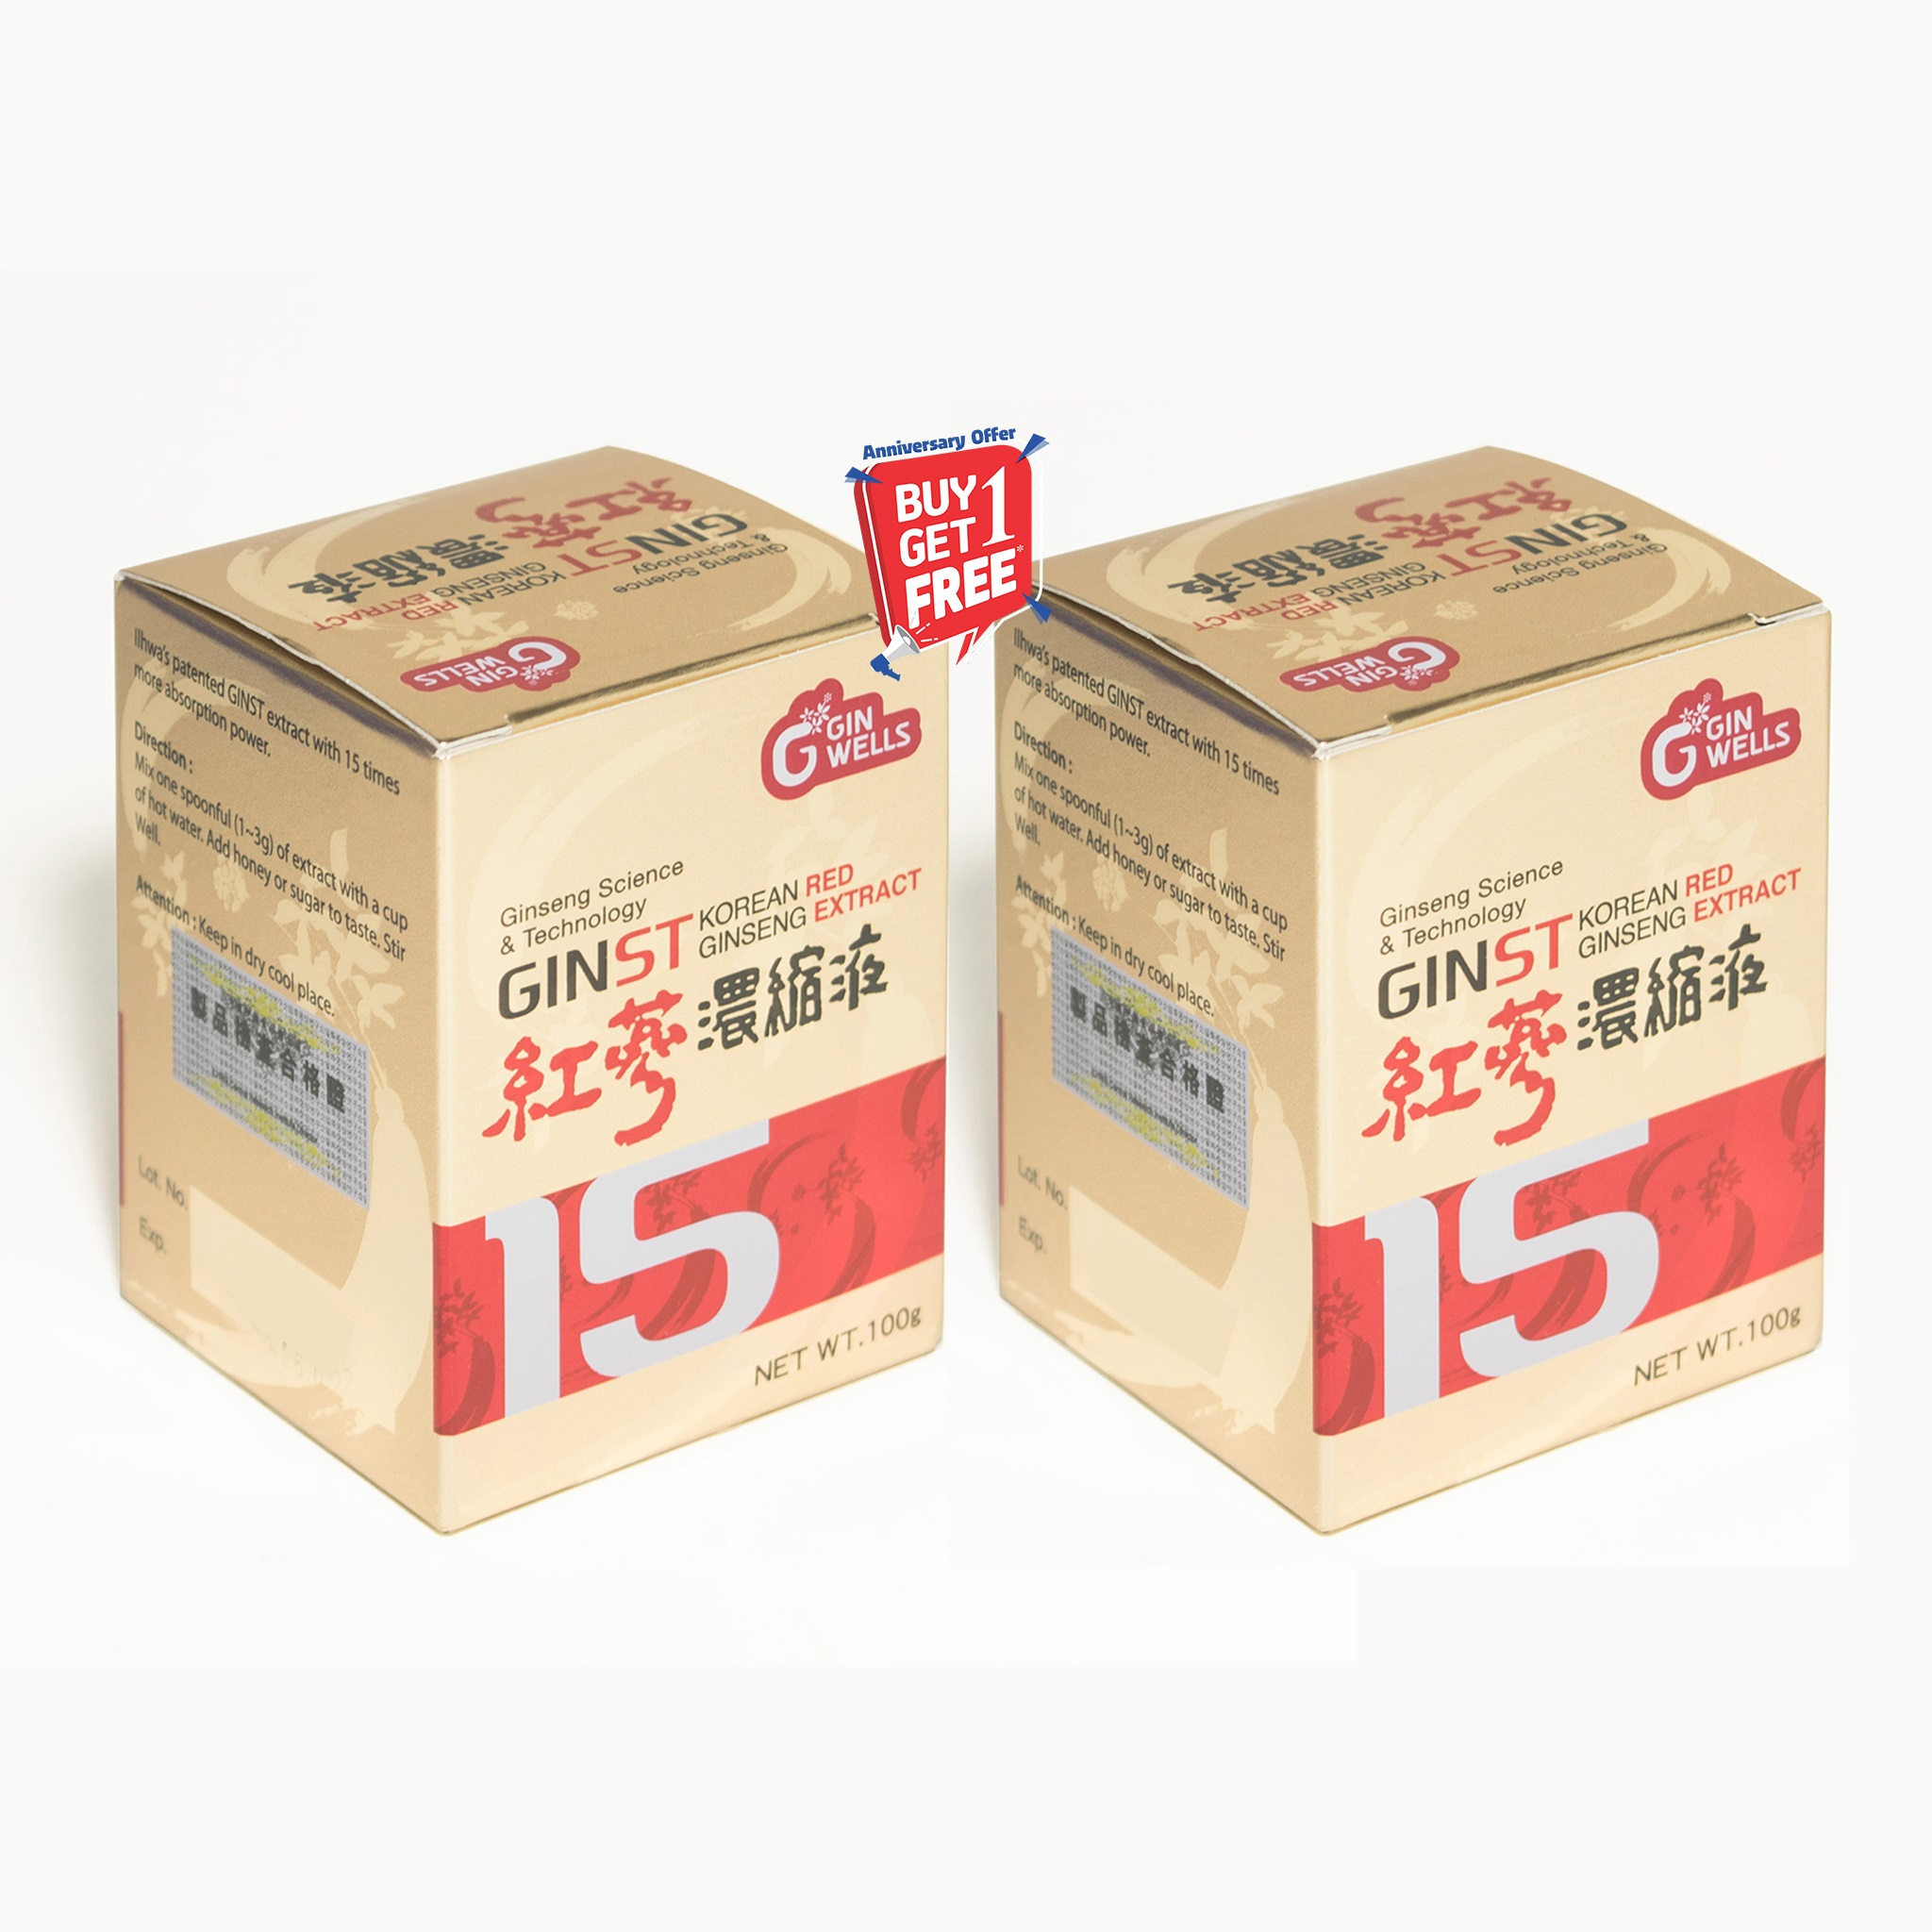 GINST 15 Korean Red Ginseng Extract 100 gms Buy 1 Get 1 Free